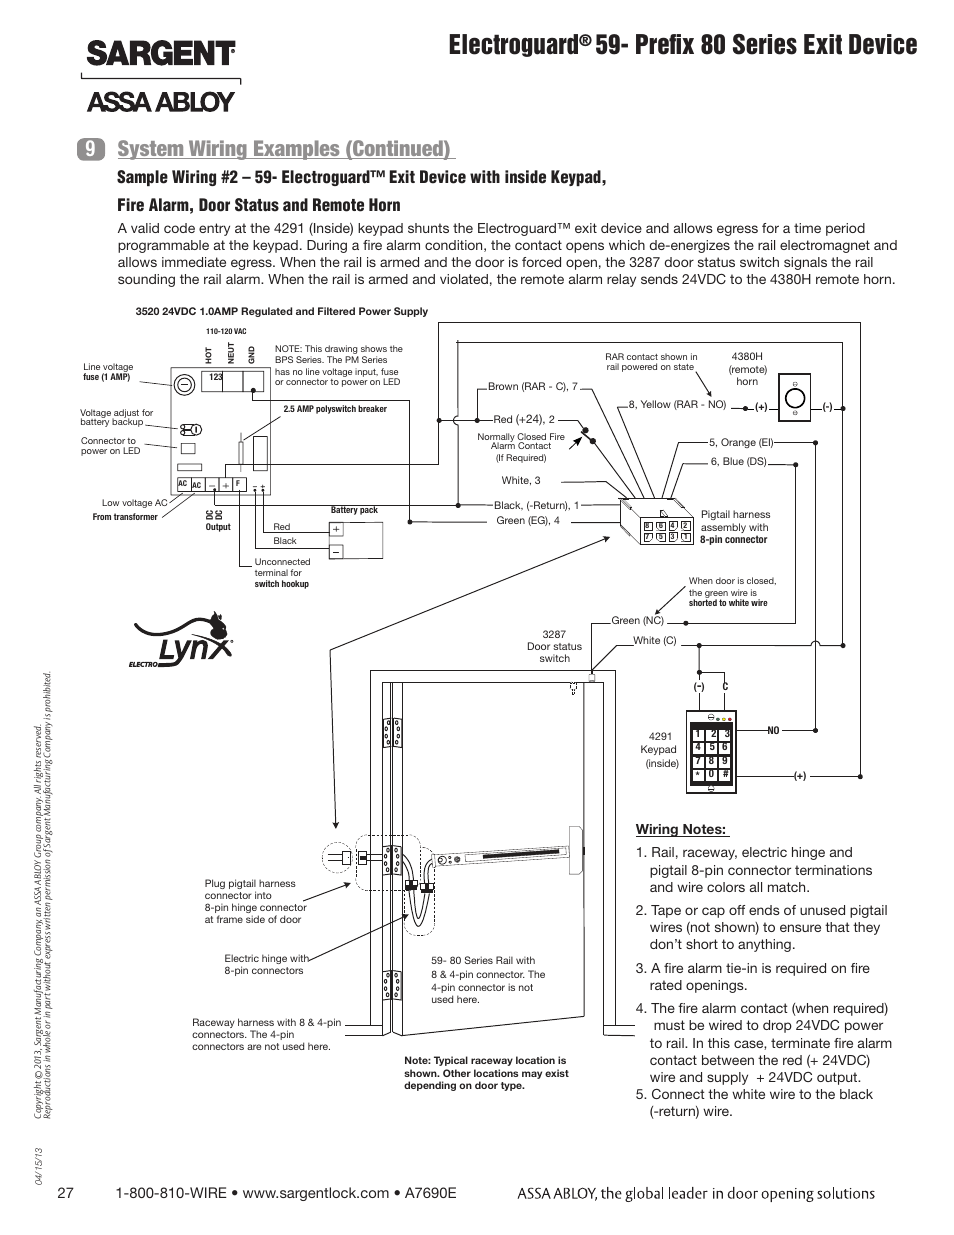 medium resolution of electroguard prefix 80 series exit device system wiring examples continued 9 sargent fm8700 surface vertical rod exit device user manual page 27